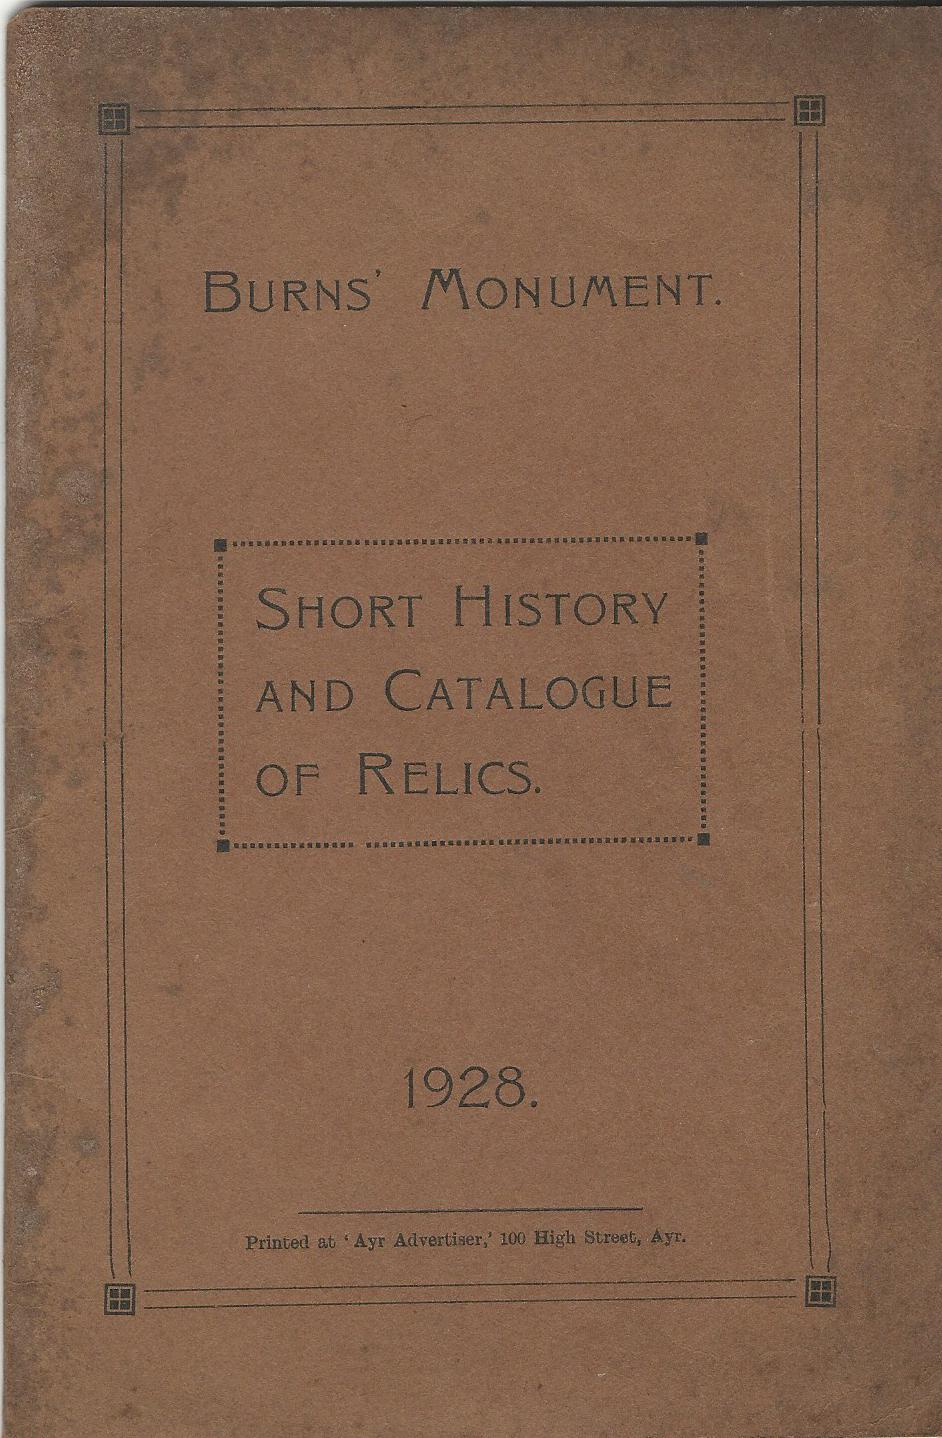 Image for Burns' Monument: Short History and Catalogue of Relics